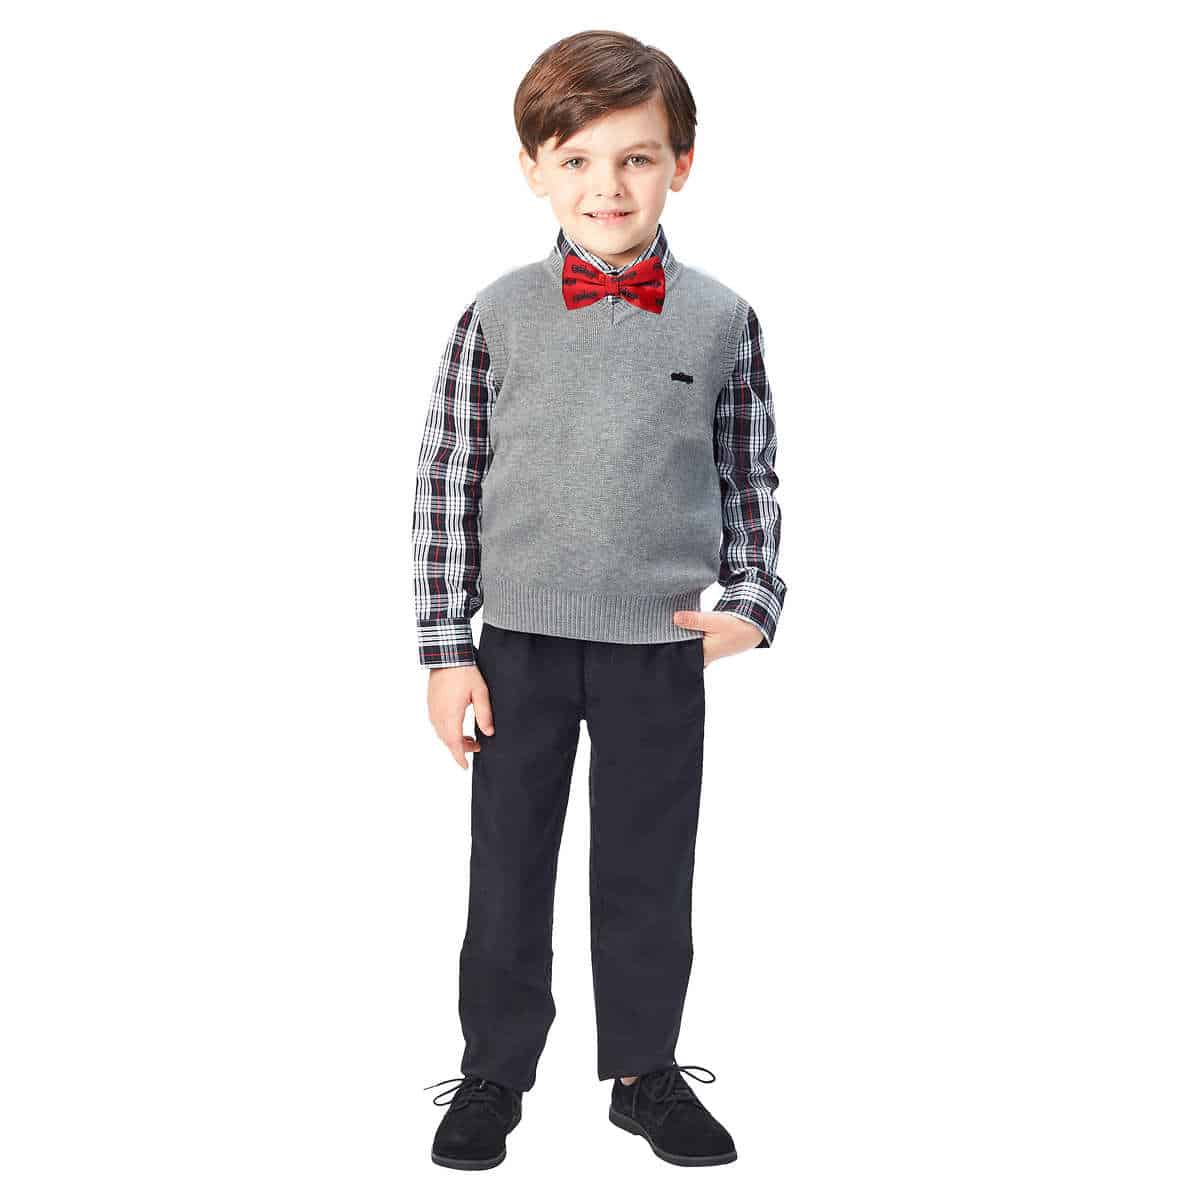 Andy & Evan Kids 4-piece Sweater Set $9.97